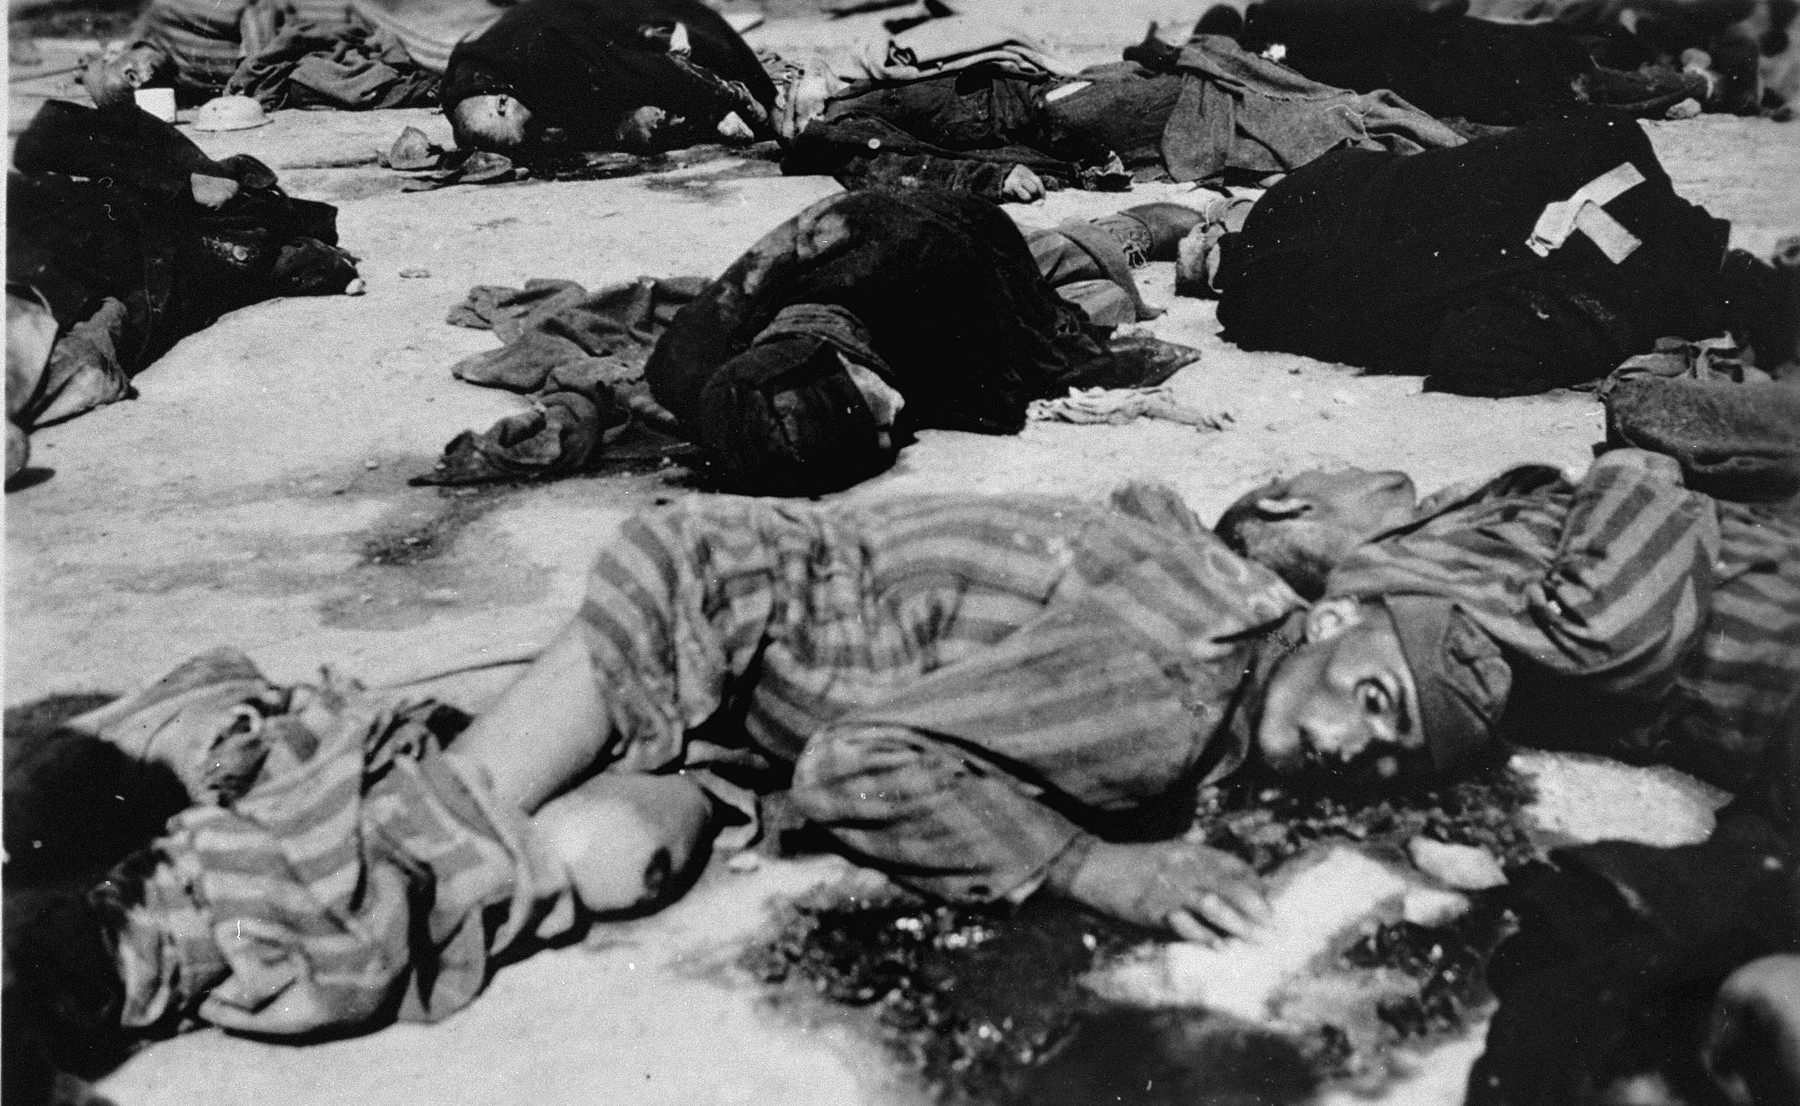 The corpses of prisoners executed by the SS during the evacuation of the camp.